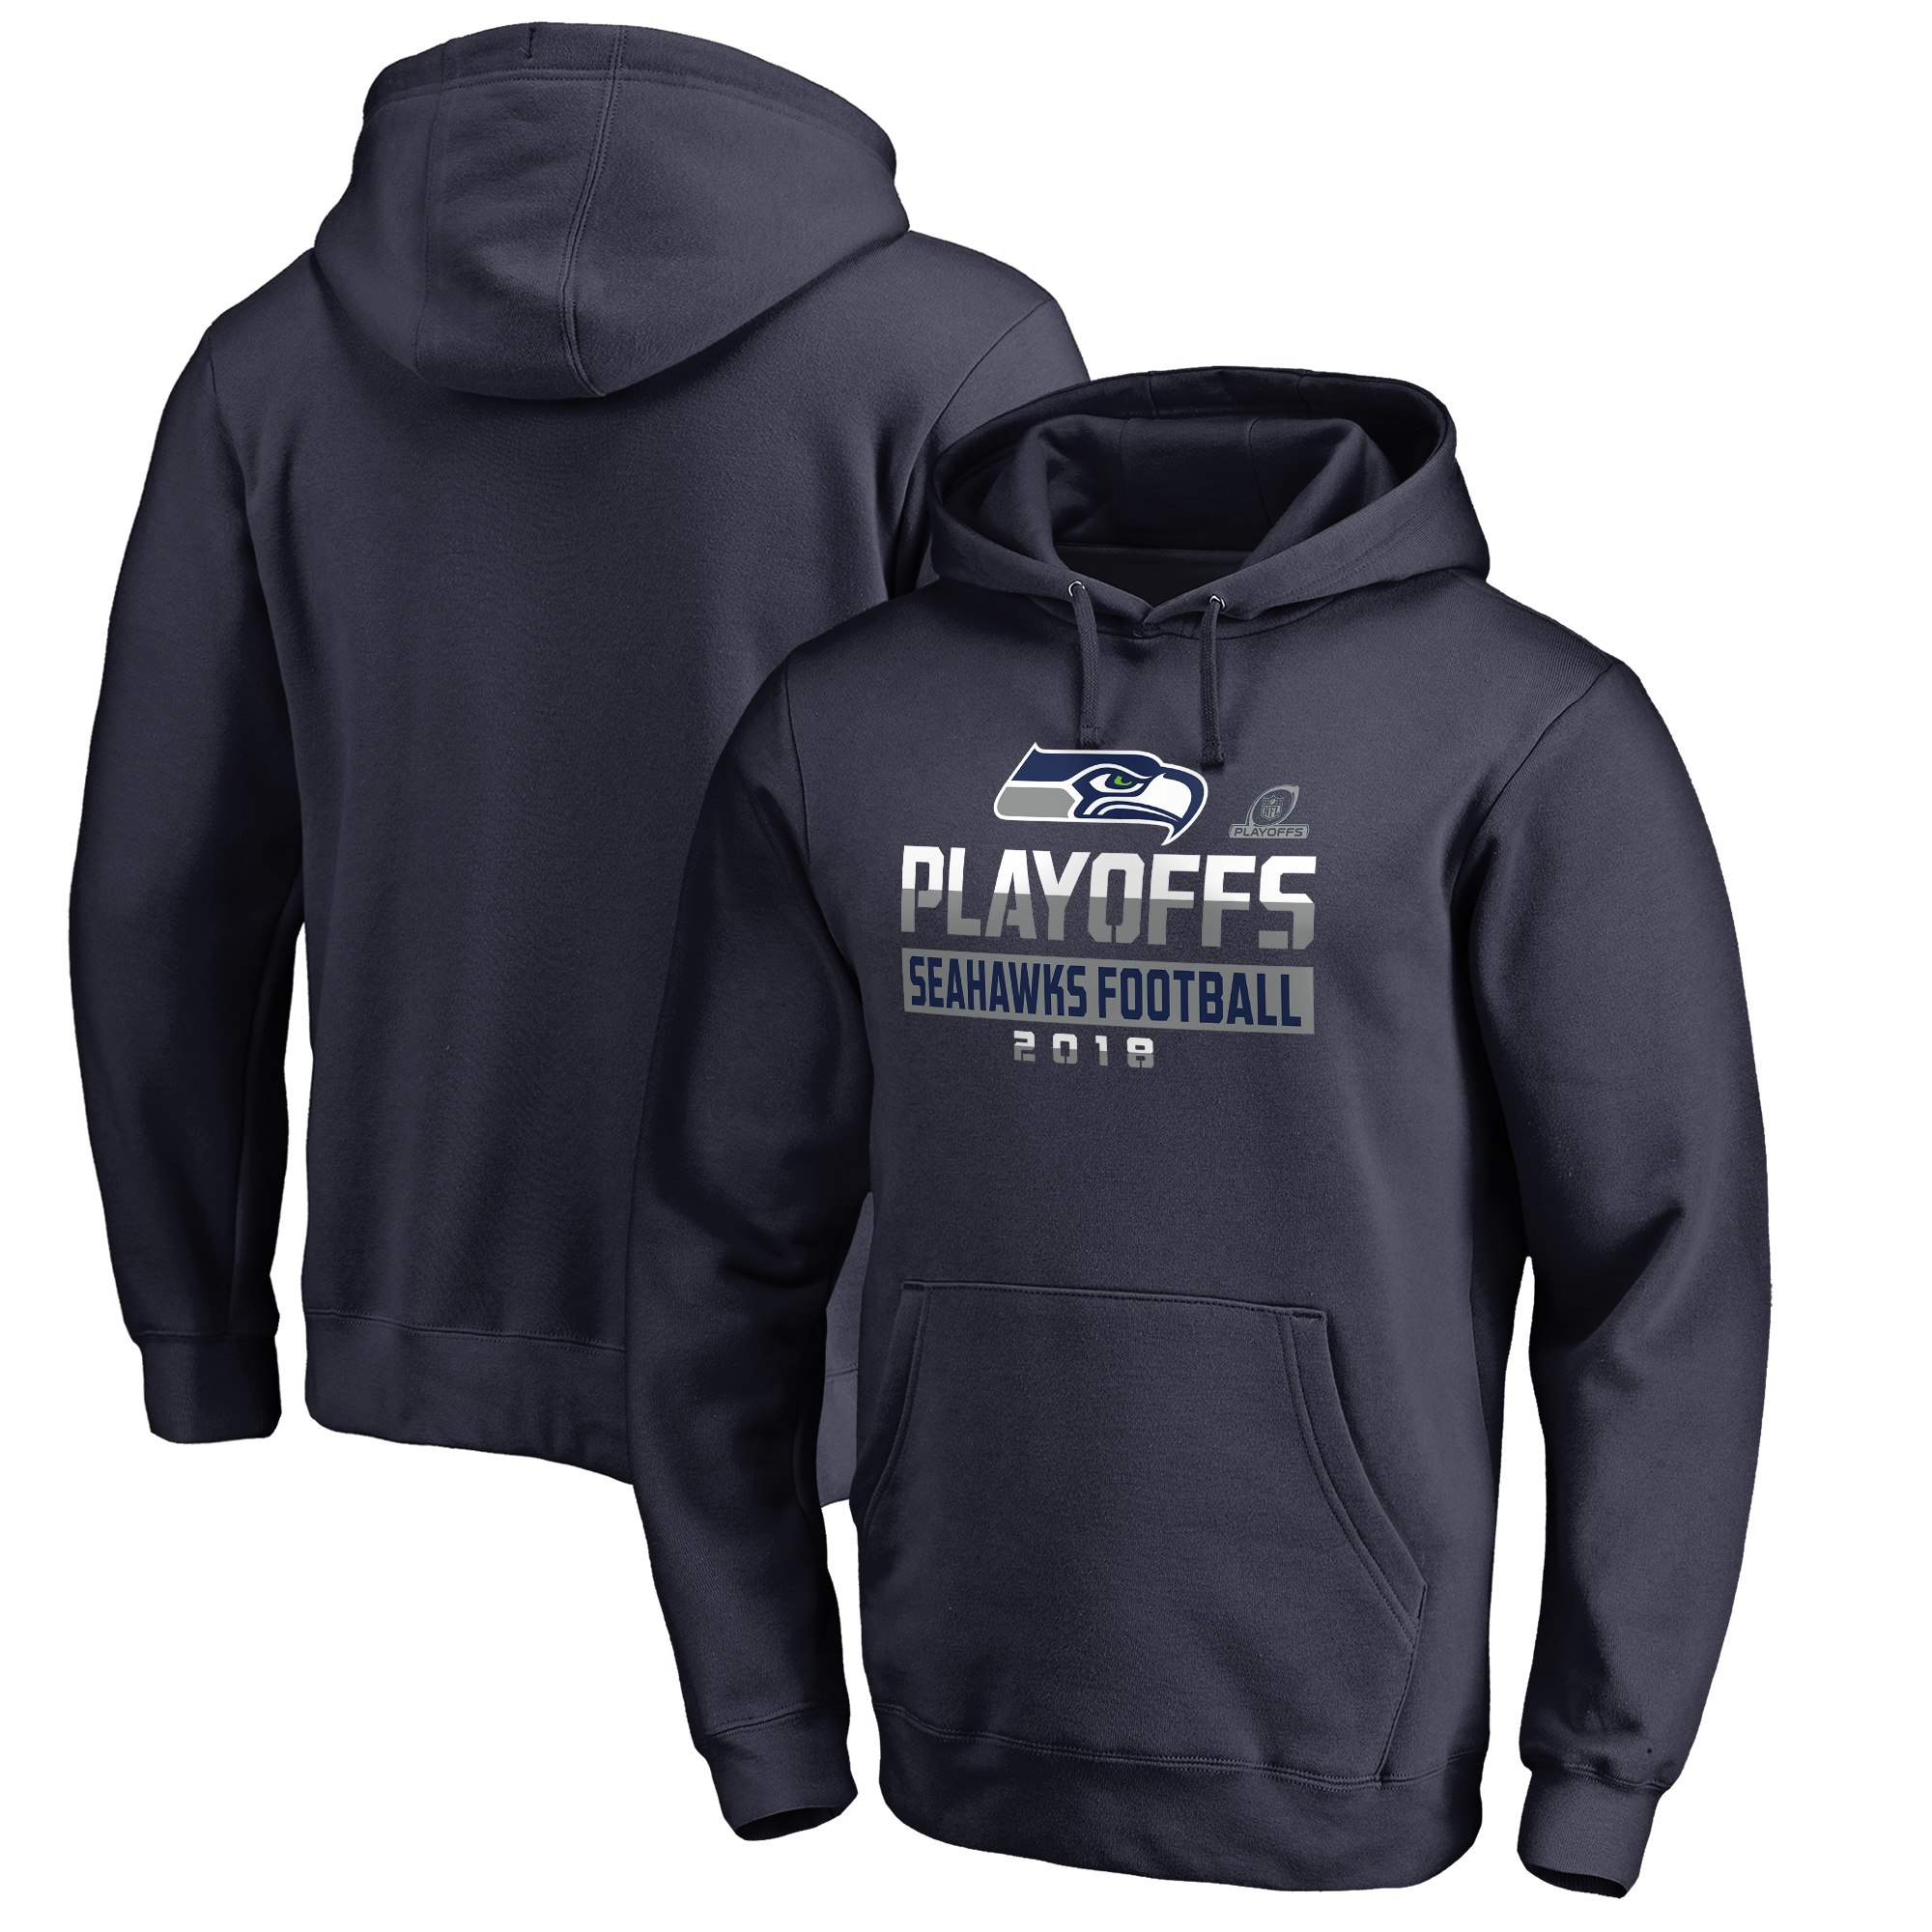 Ravens Navy 2018 NFL Playoffs Seahawks Football Men's Pullover Hoodie